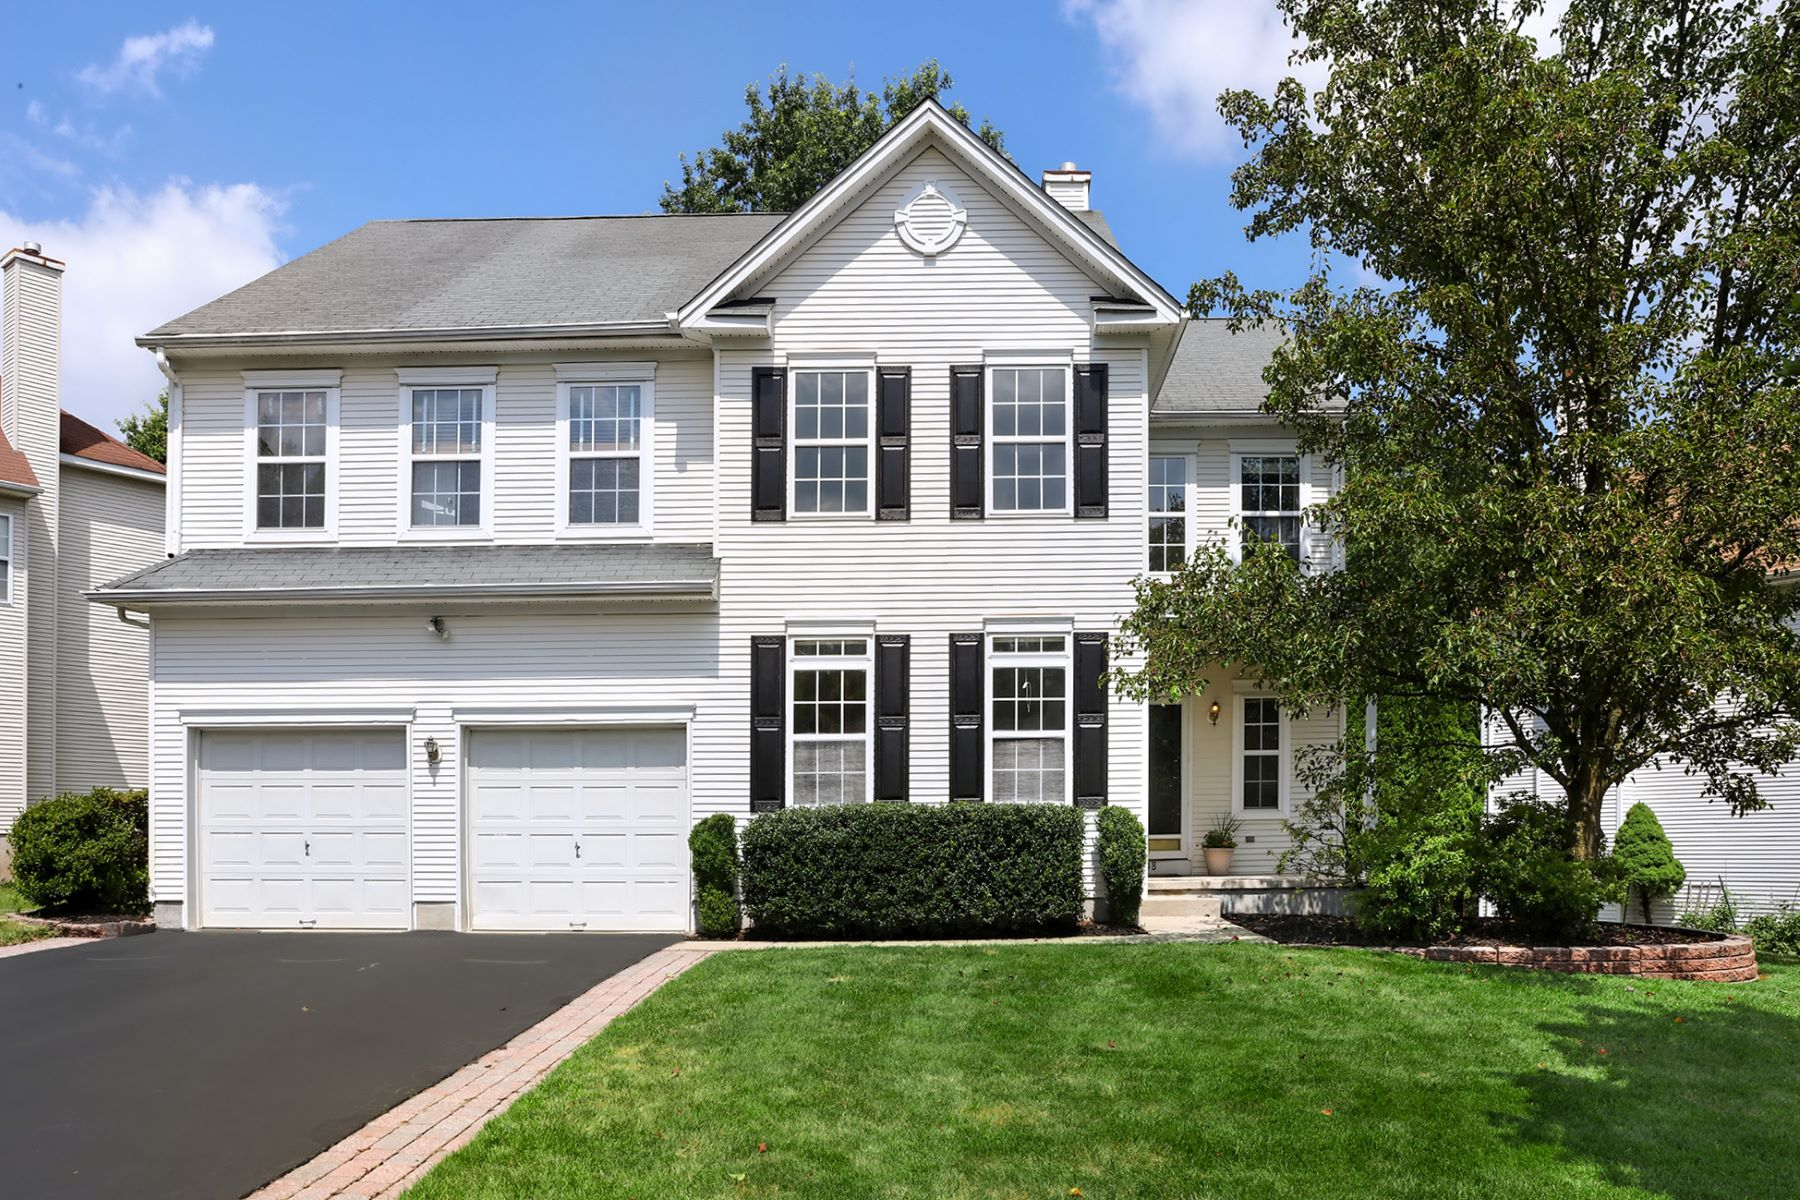 Single Family Homes for Sale at Pristine Yorkshire Woods Home 48 York Drive, Princeton, New Jersey 08540 United States